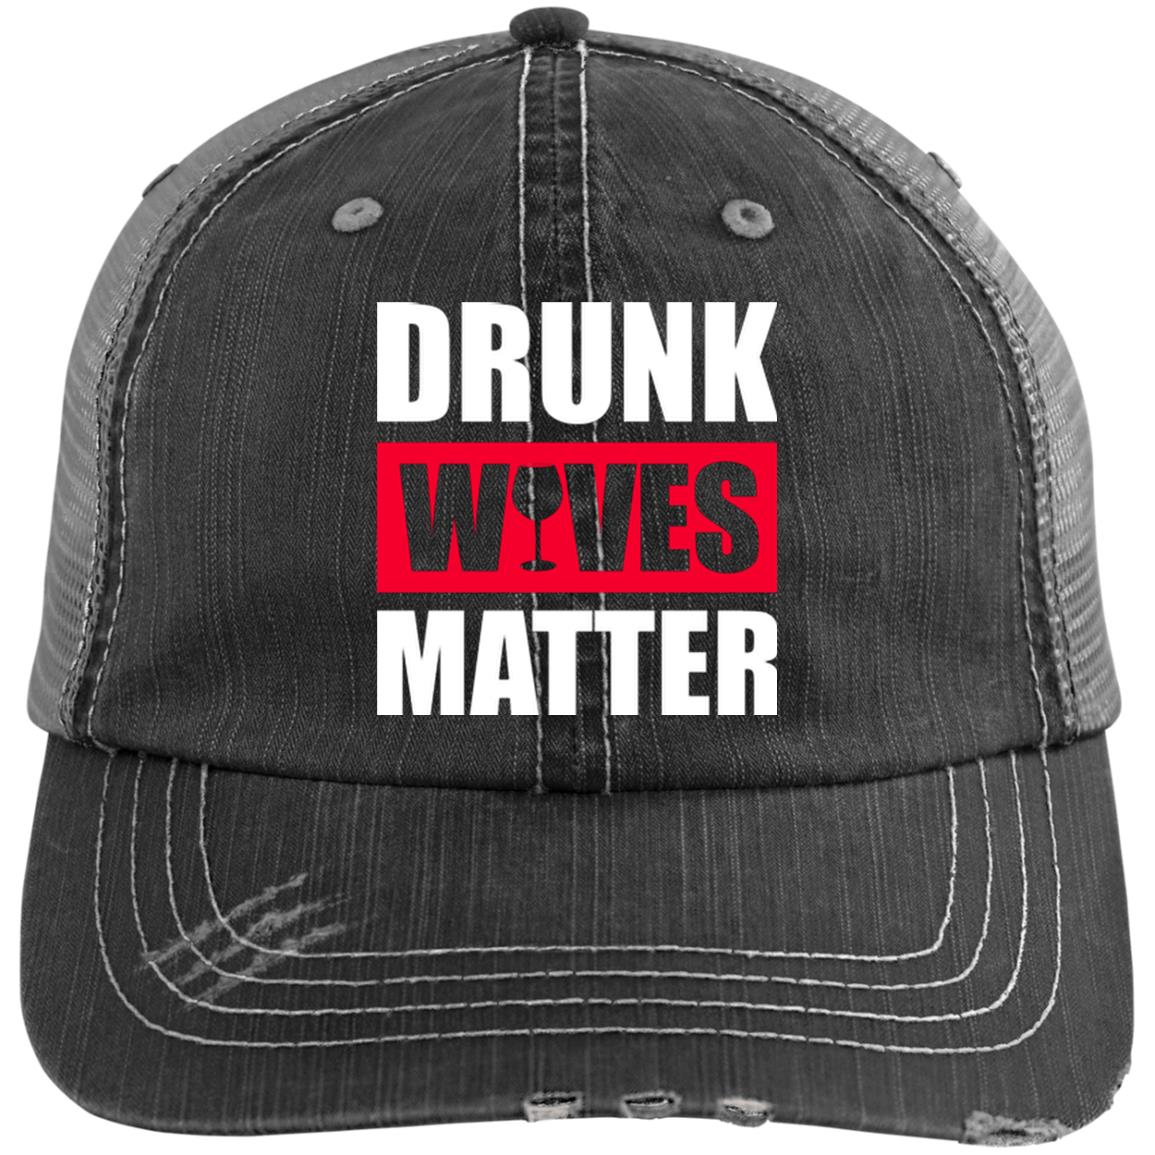 Drunk Wives Matter - Distressed Syle